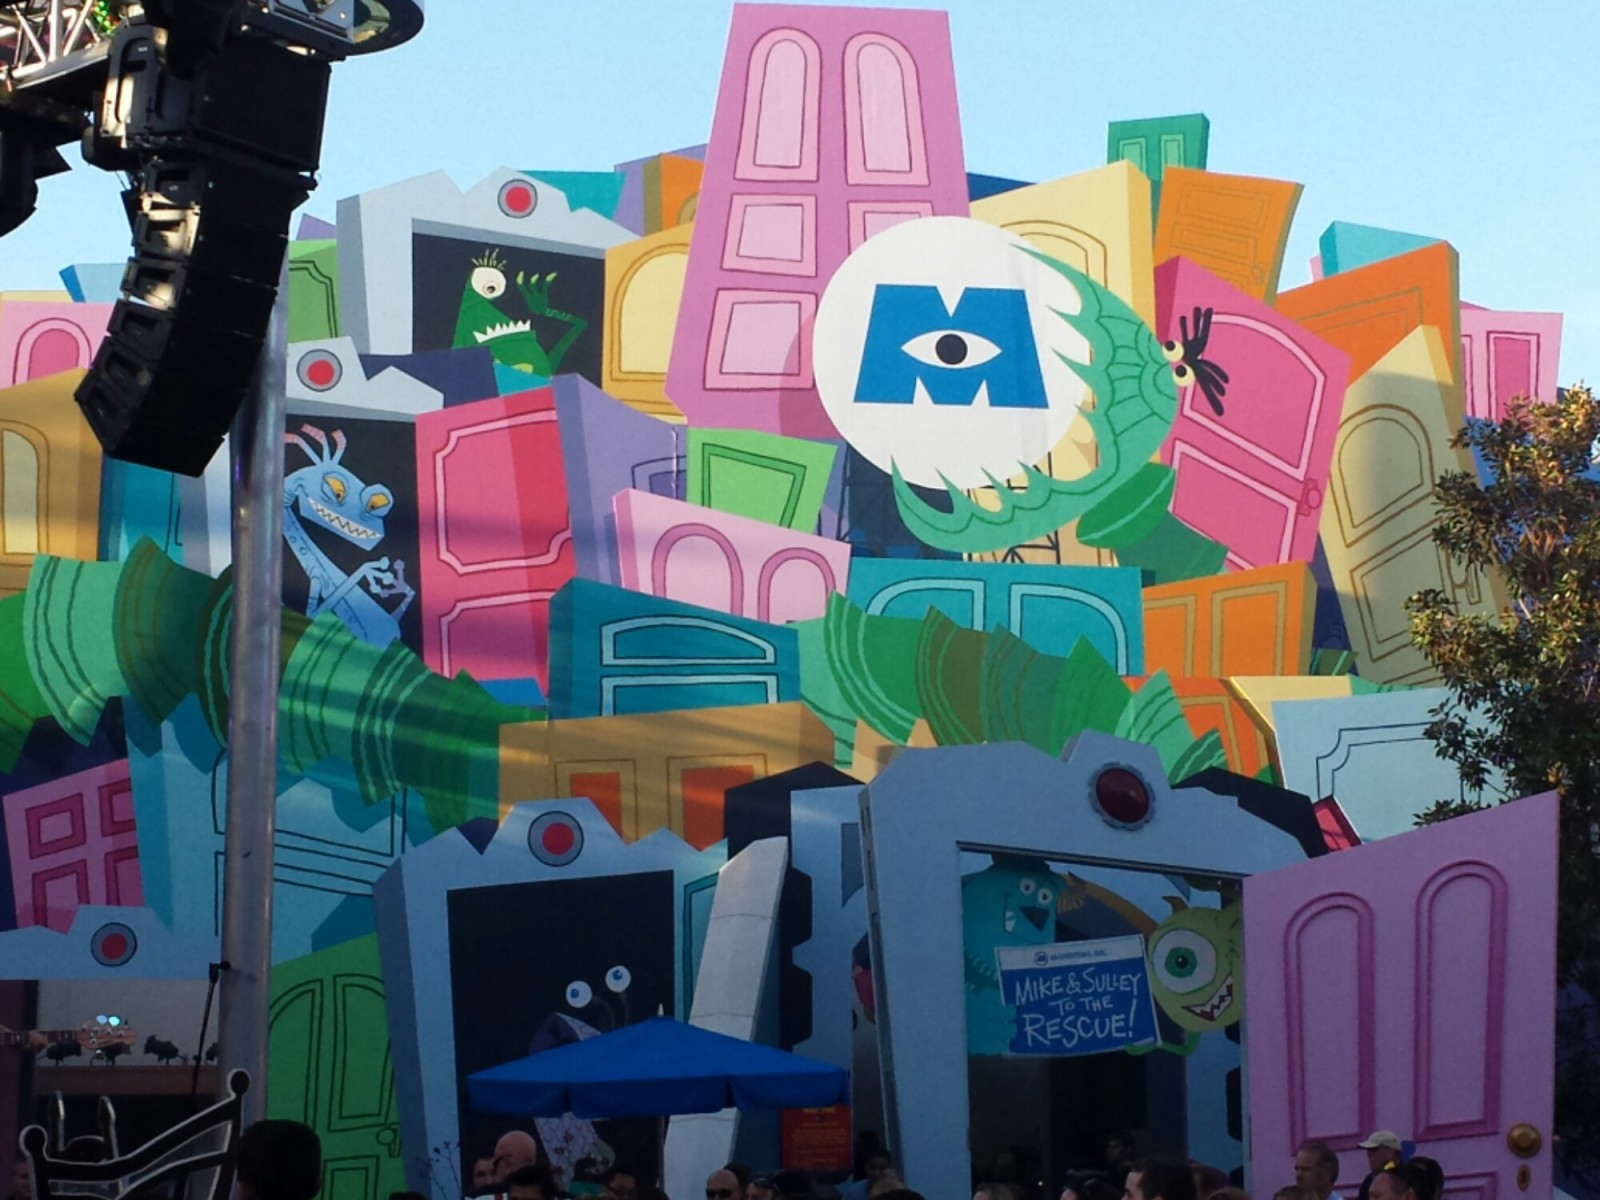 Monsters Inc has a posted 30 min wait #SpringBreak